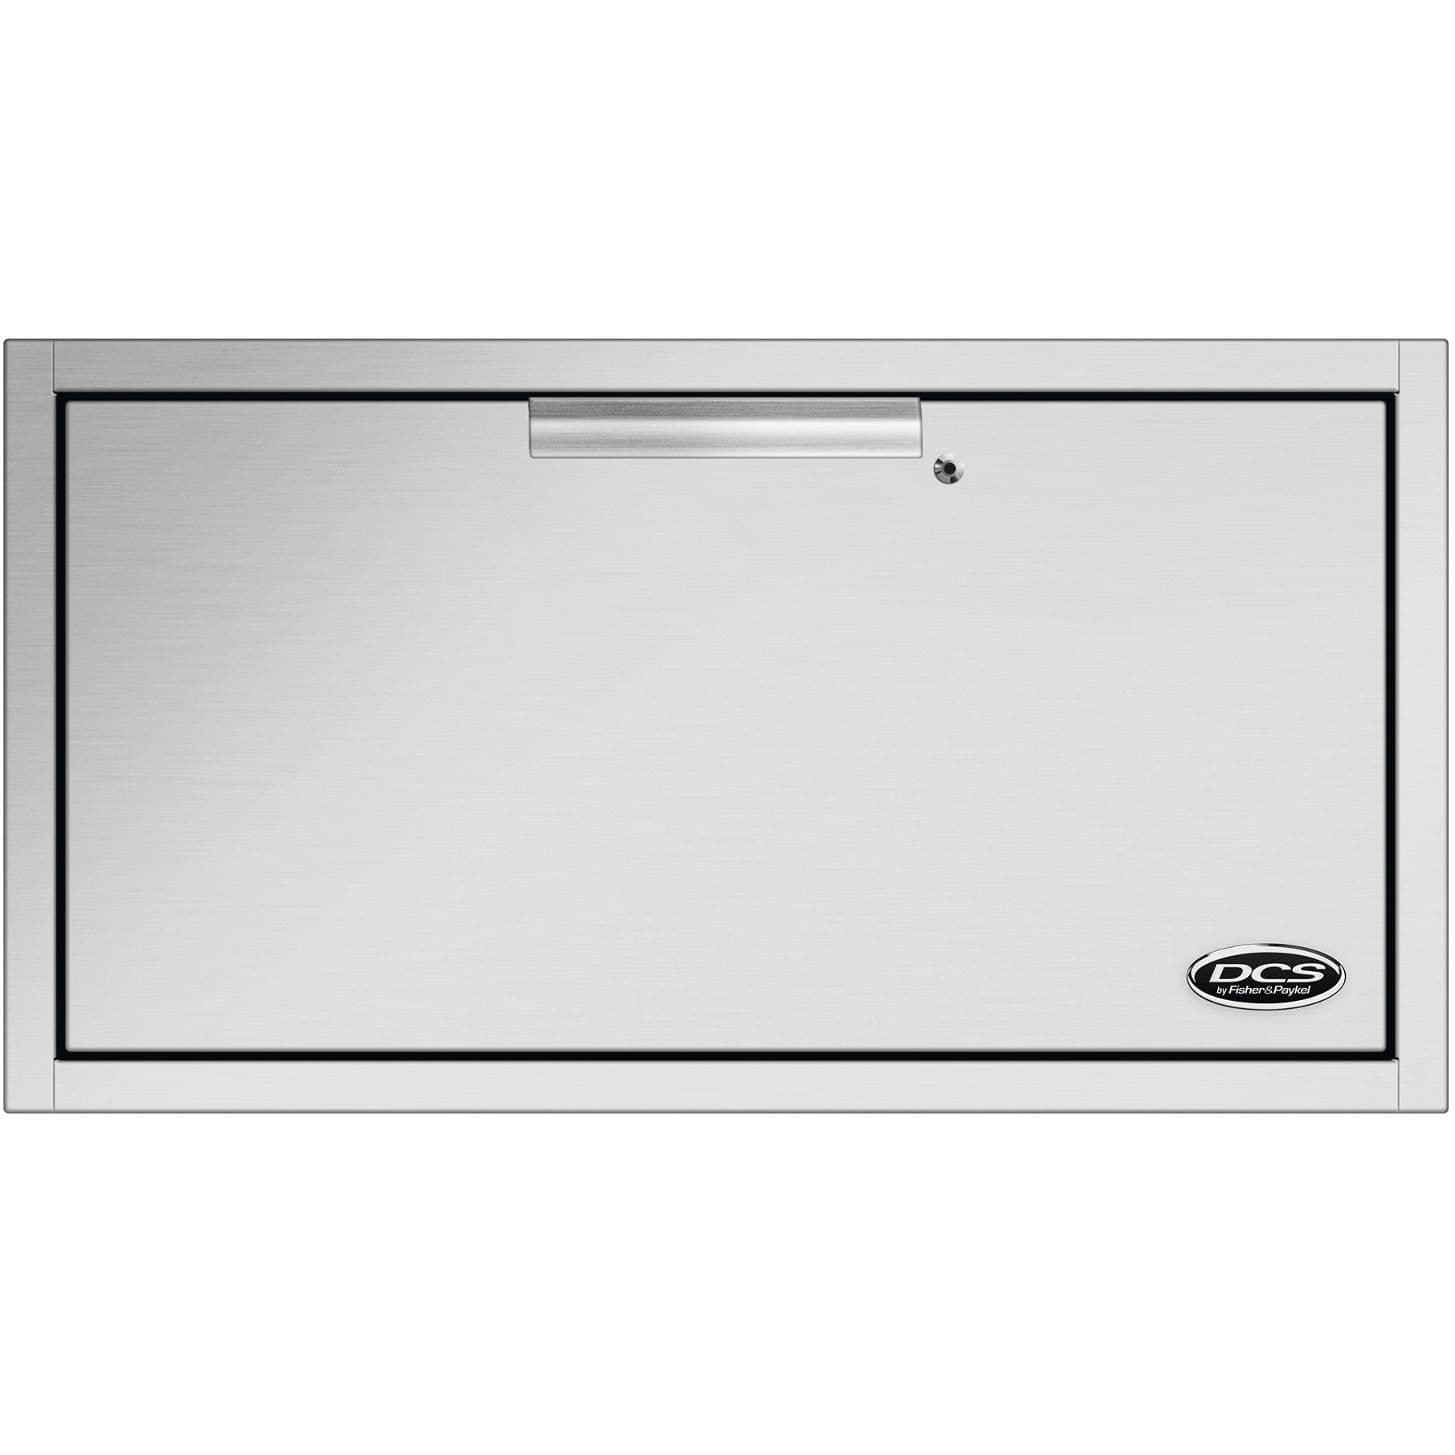 "DCS 30"" Outdoor Warming Drawer-TheBBQHQ"